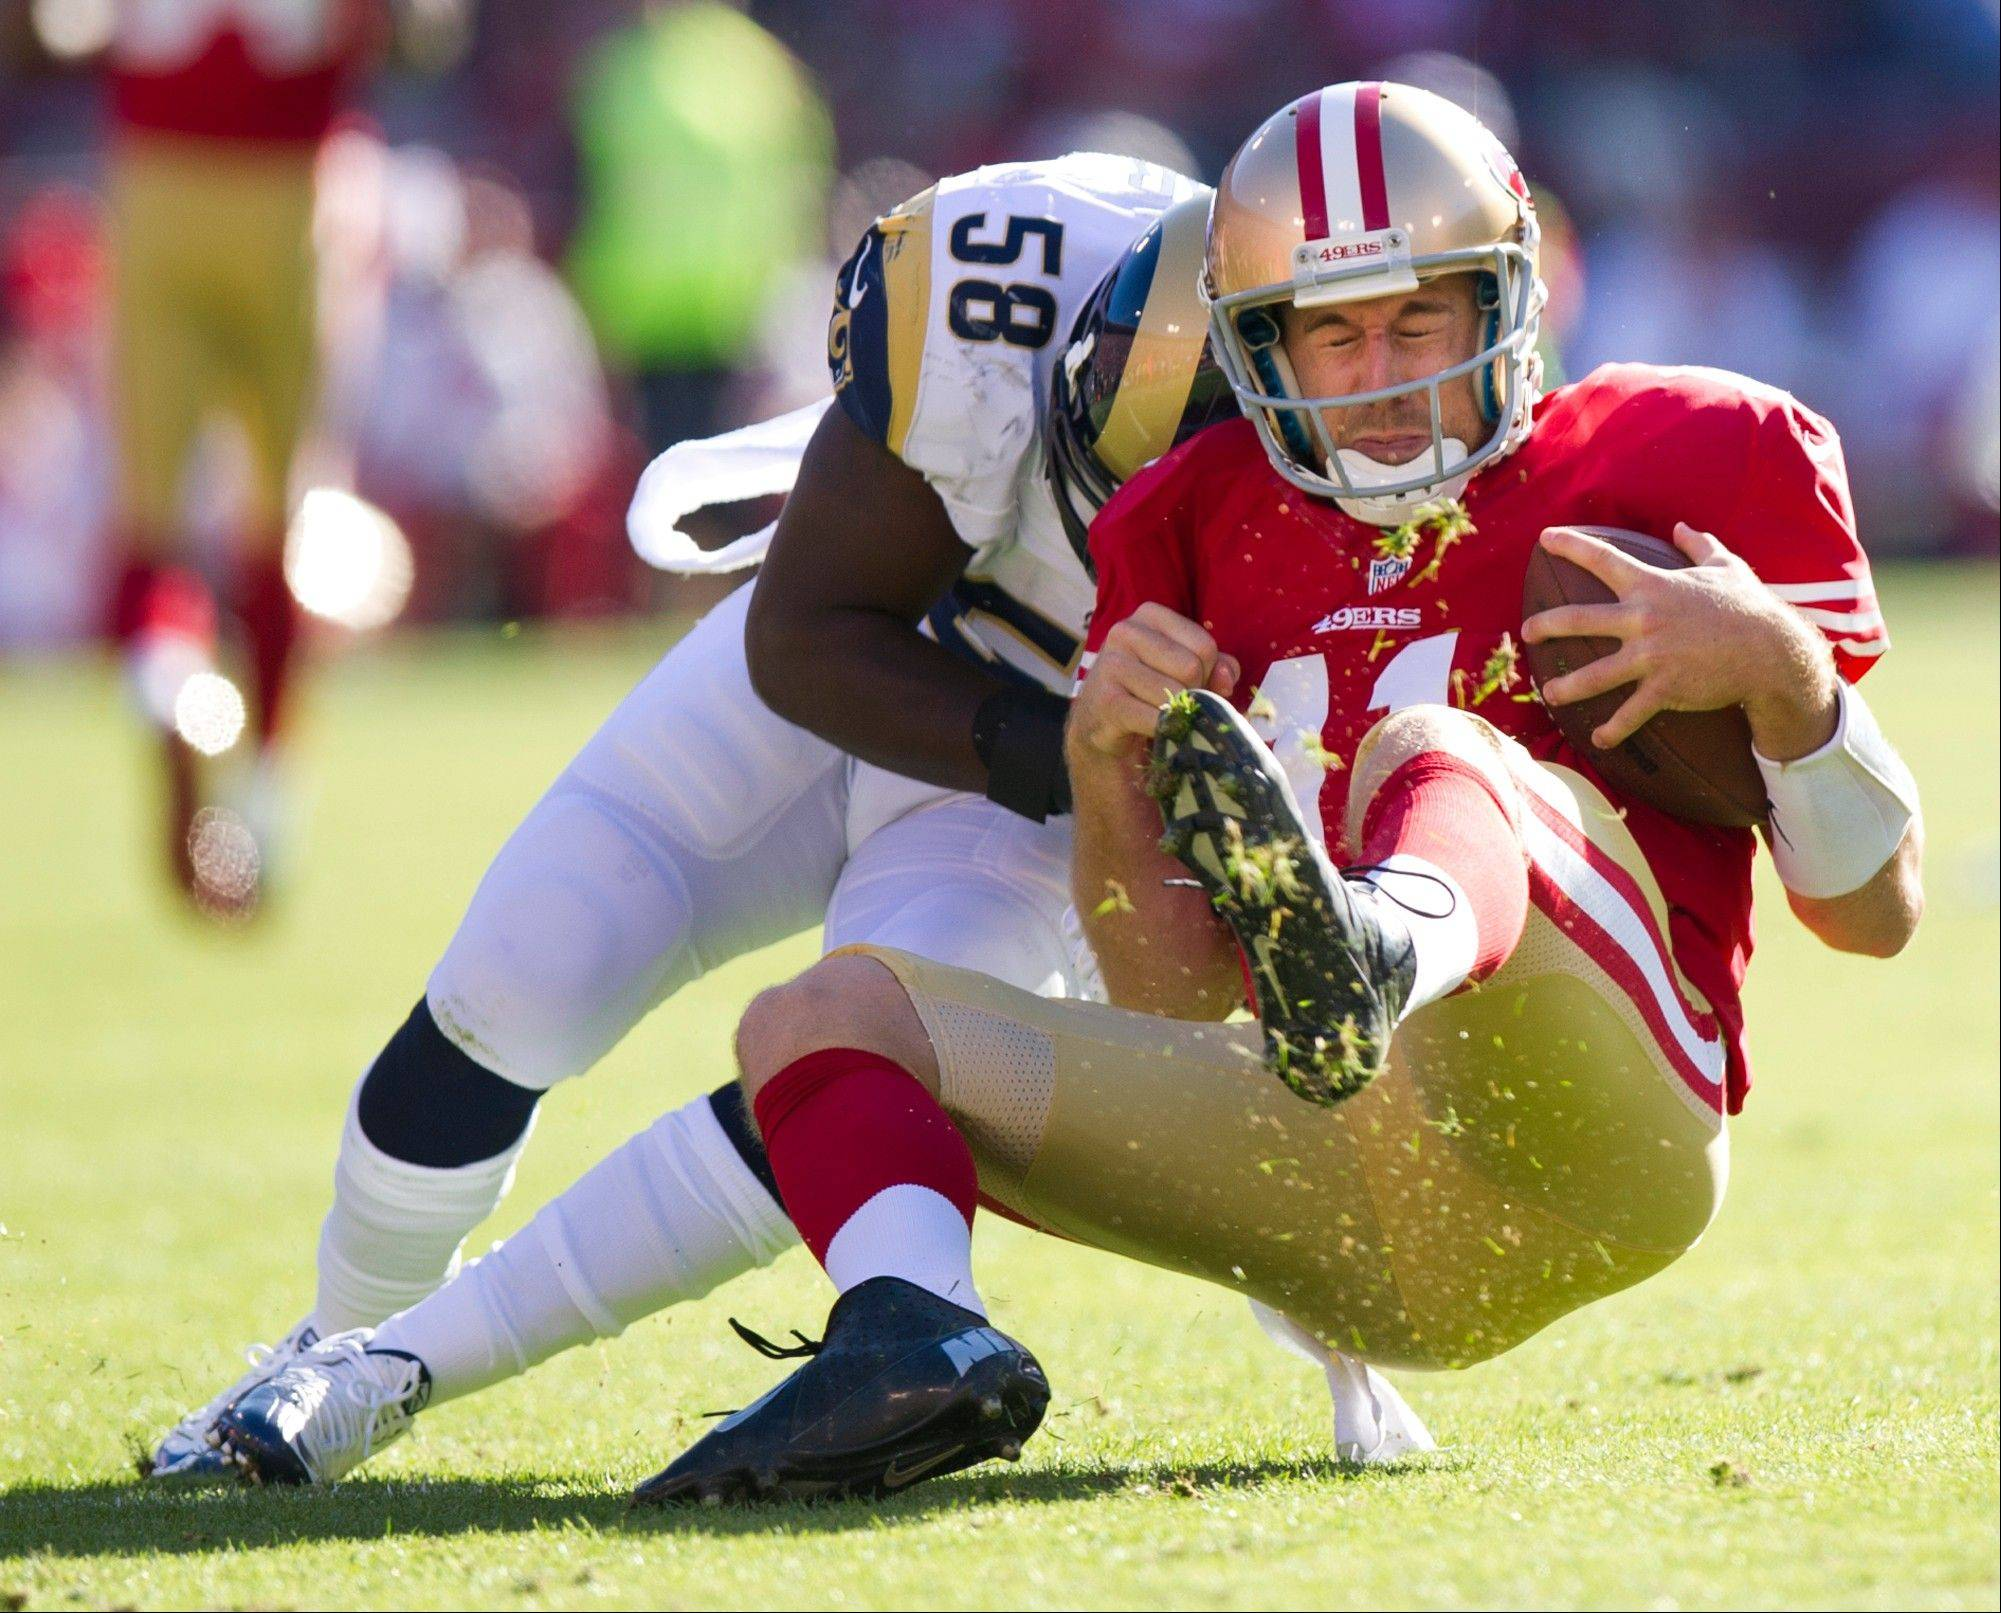 San Francisco 49ers quarterback Alex Smith suffered a concussion on this tackle Sunday by St. Louis Rams linebacker Jo-Lonn Dunbar.